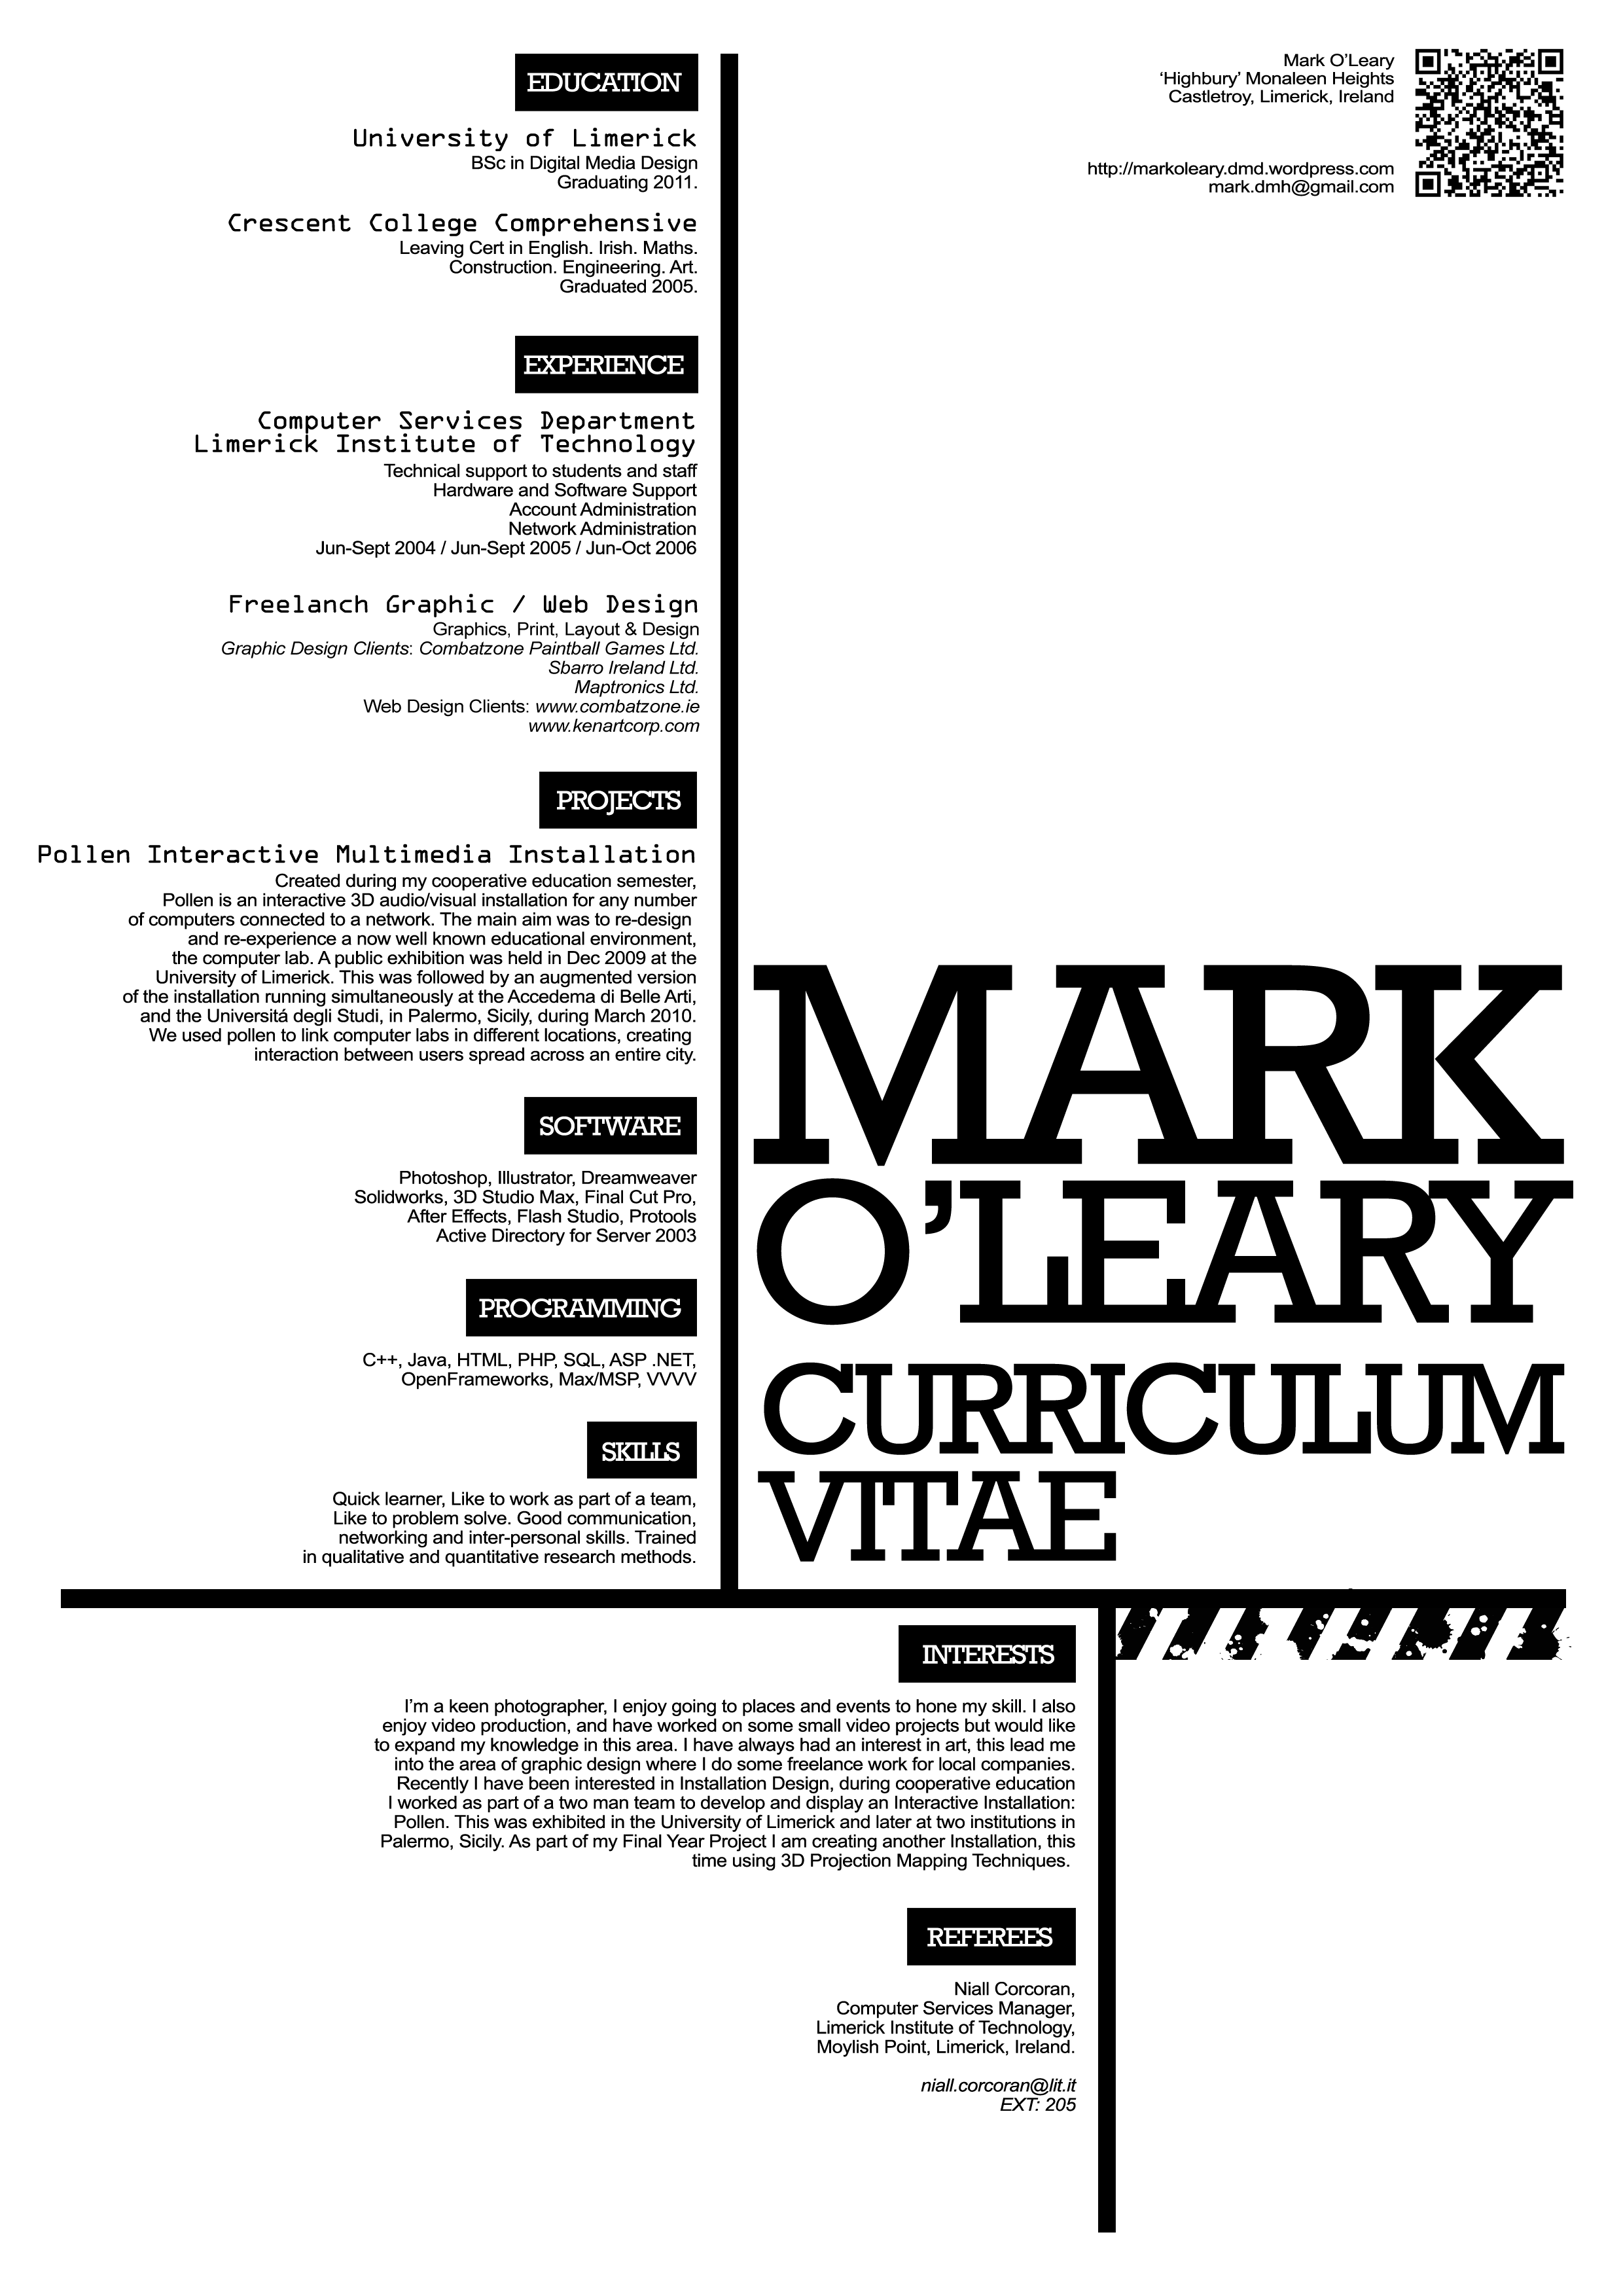 Curriculum Vitae Design | Typography, Creative cv and Cv ideas